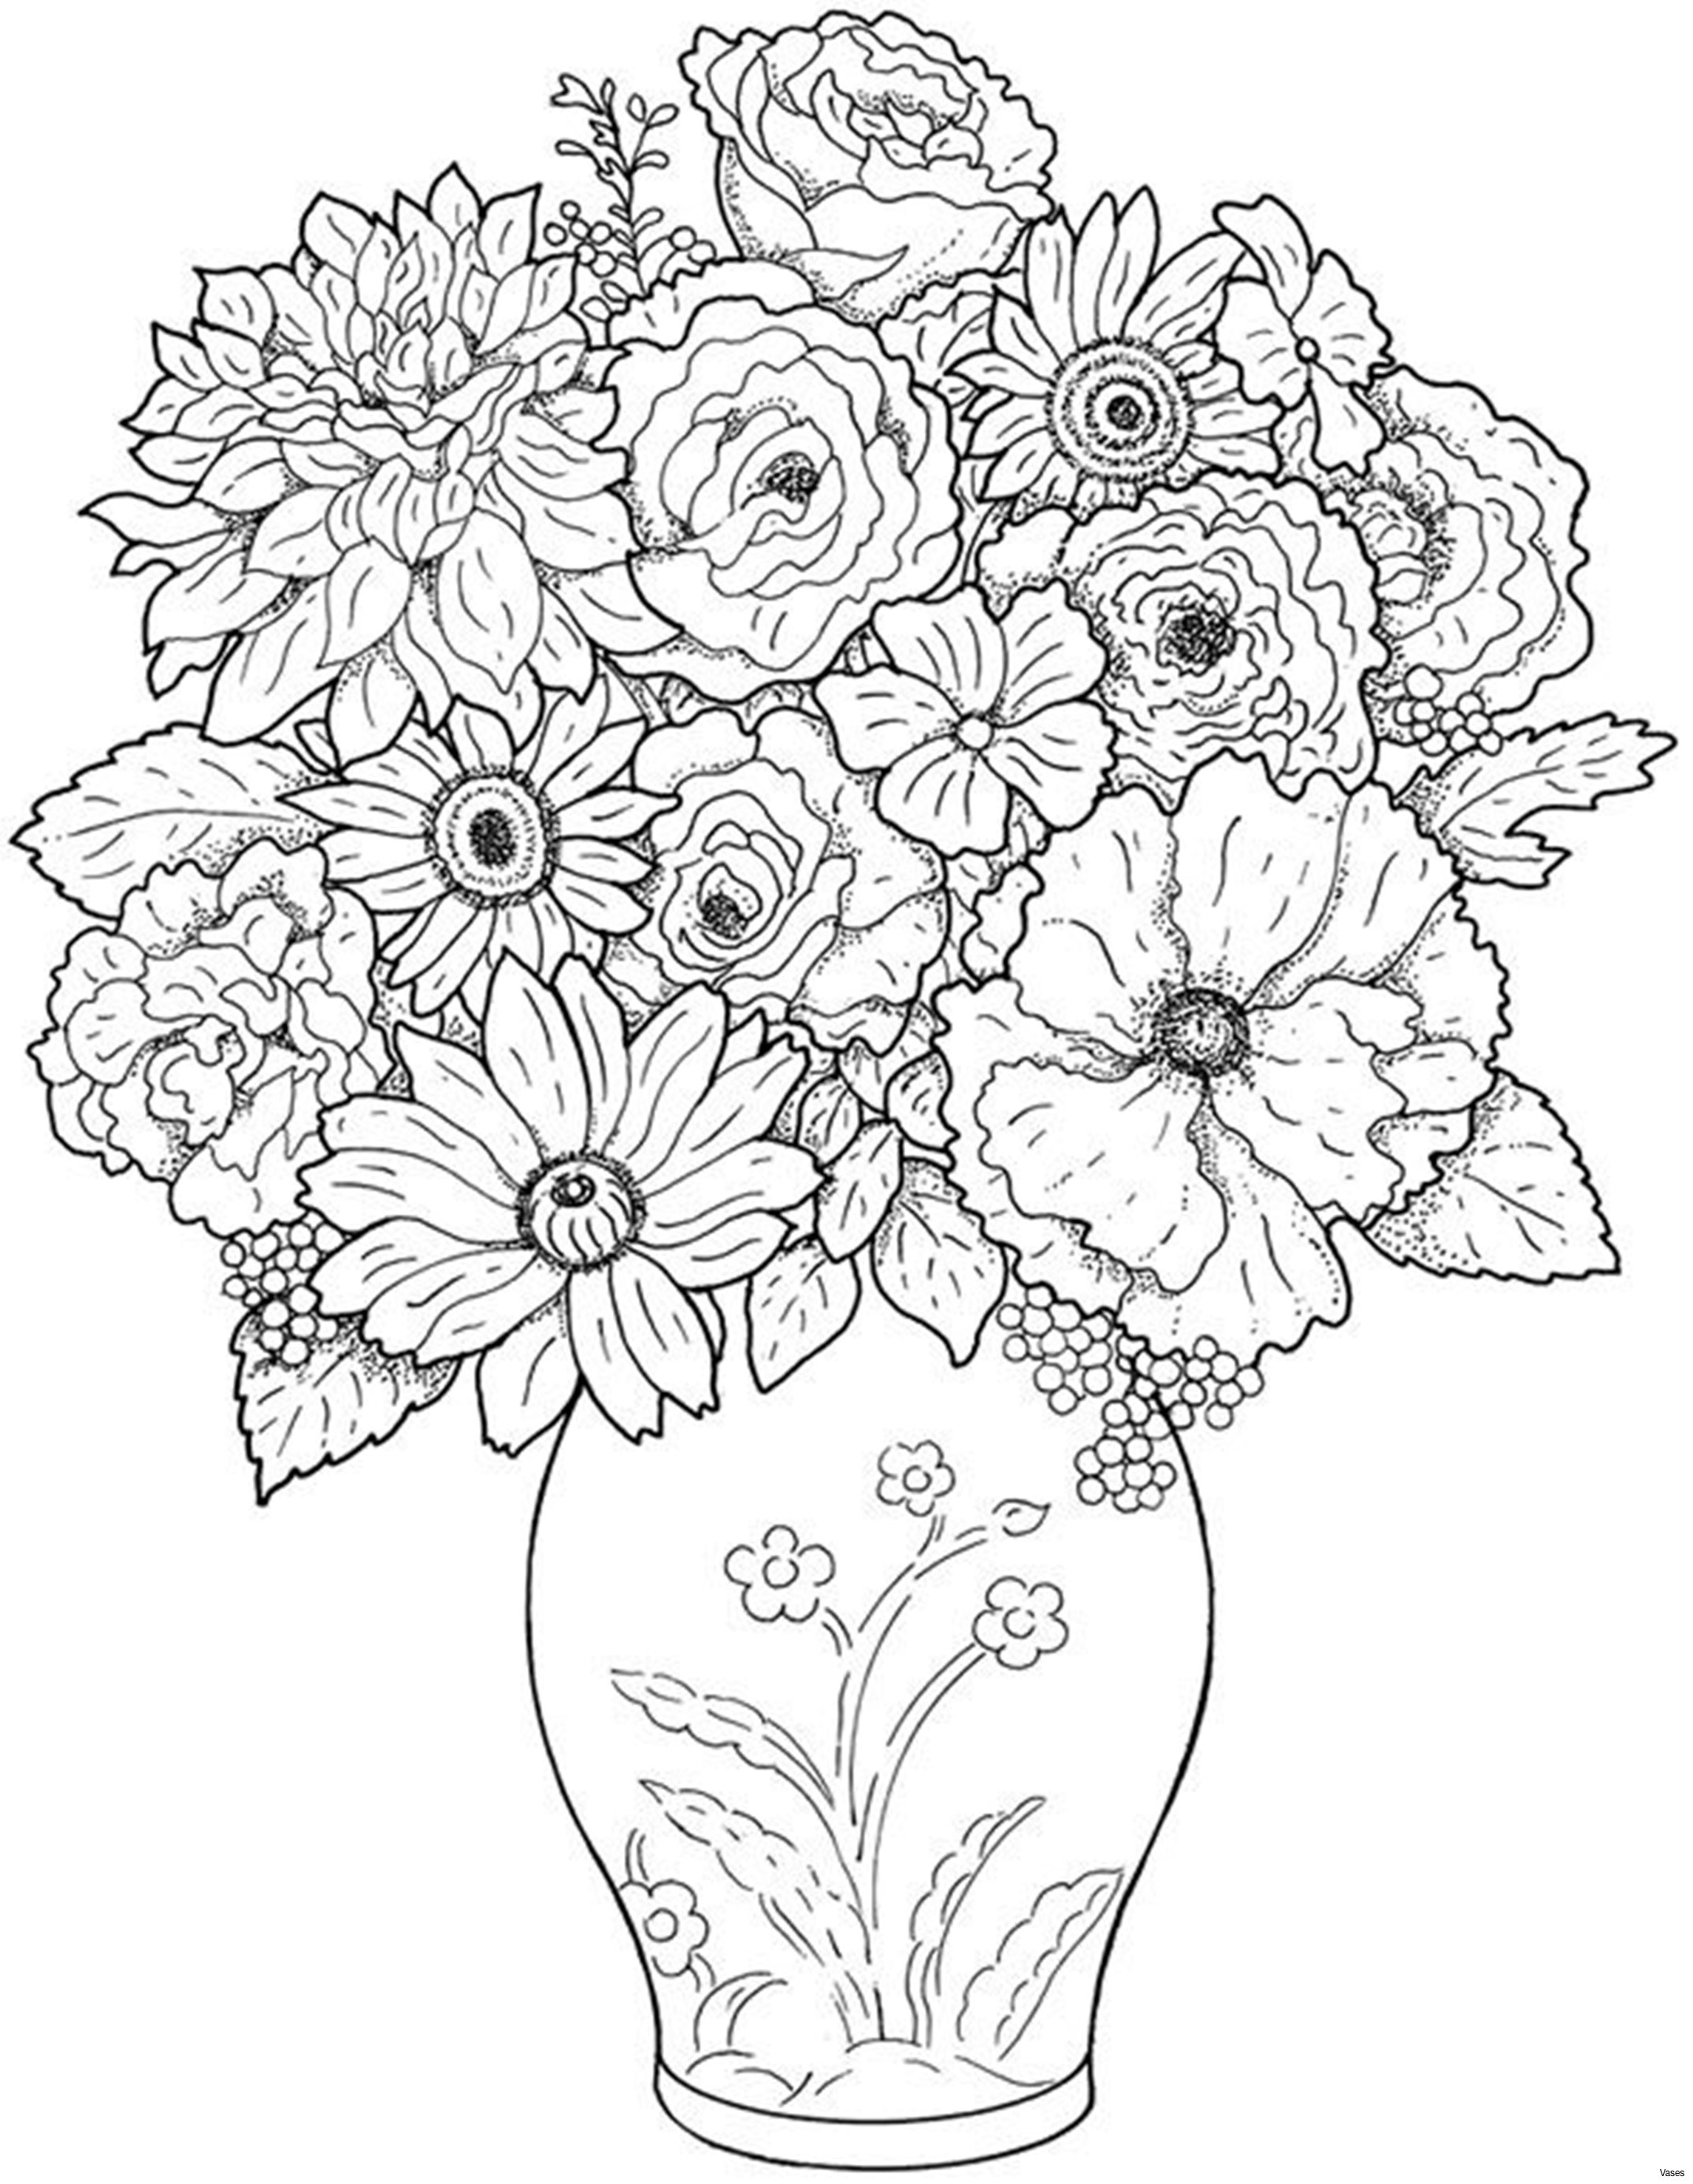 Types Of Vases for Flowers Of Pictures for Coloring Luxury Cool Vases Flower Vase Coloring Page Pertaining to Pictures for Coloring Luxury Cool Vases Flower Vase Coloring Page Pages Flowers In A top I